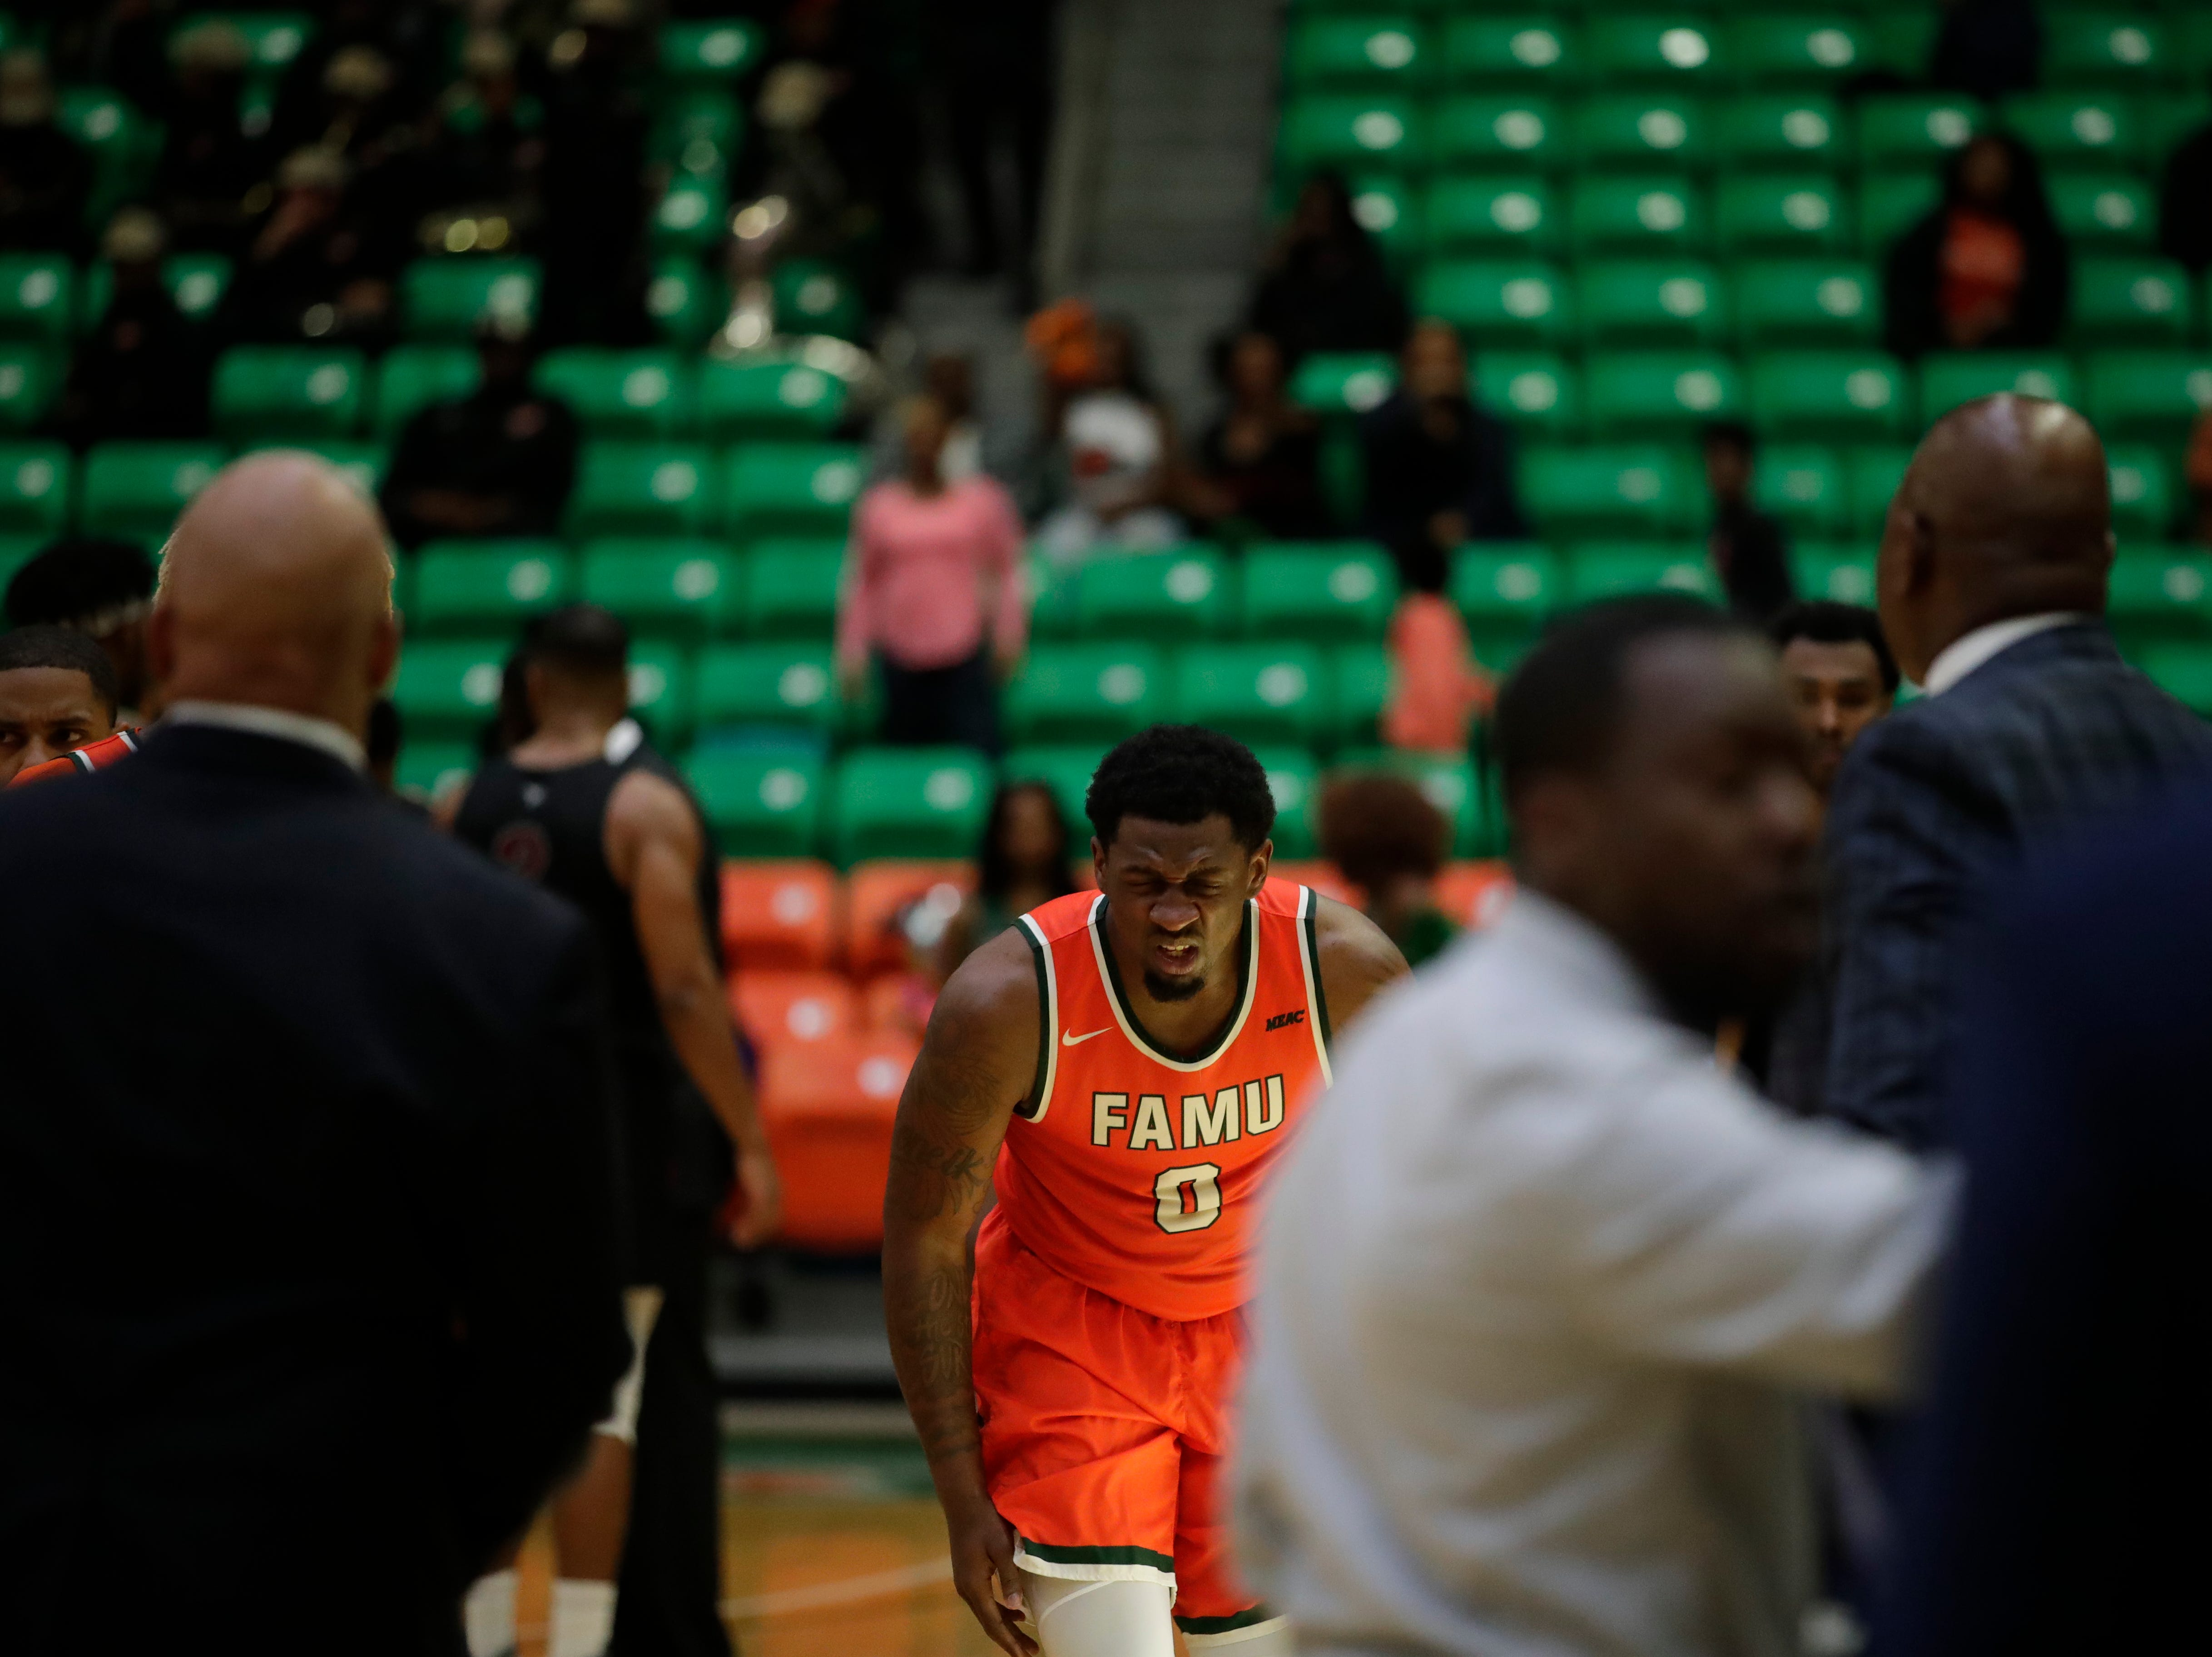 Florida A&M Rattlers forward Tracy Hector Jr. (0) winces after taking a hit to the eye during a game between FAMU and North Carolina Central at the Alfred Lawson Jr. Multipurpose Center Monday, Feb. 4, 2019.